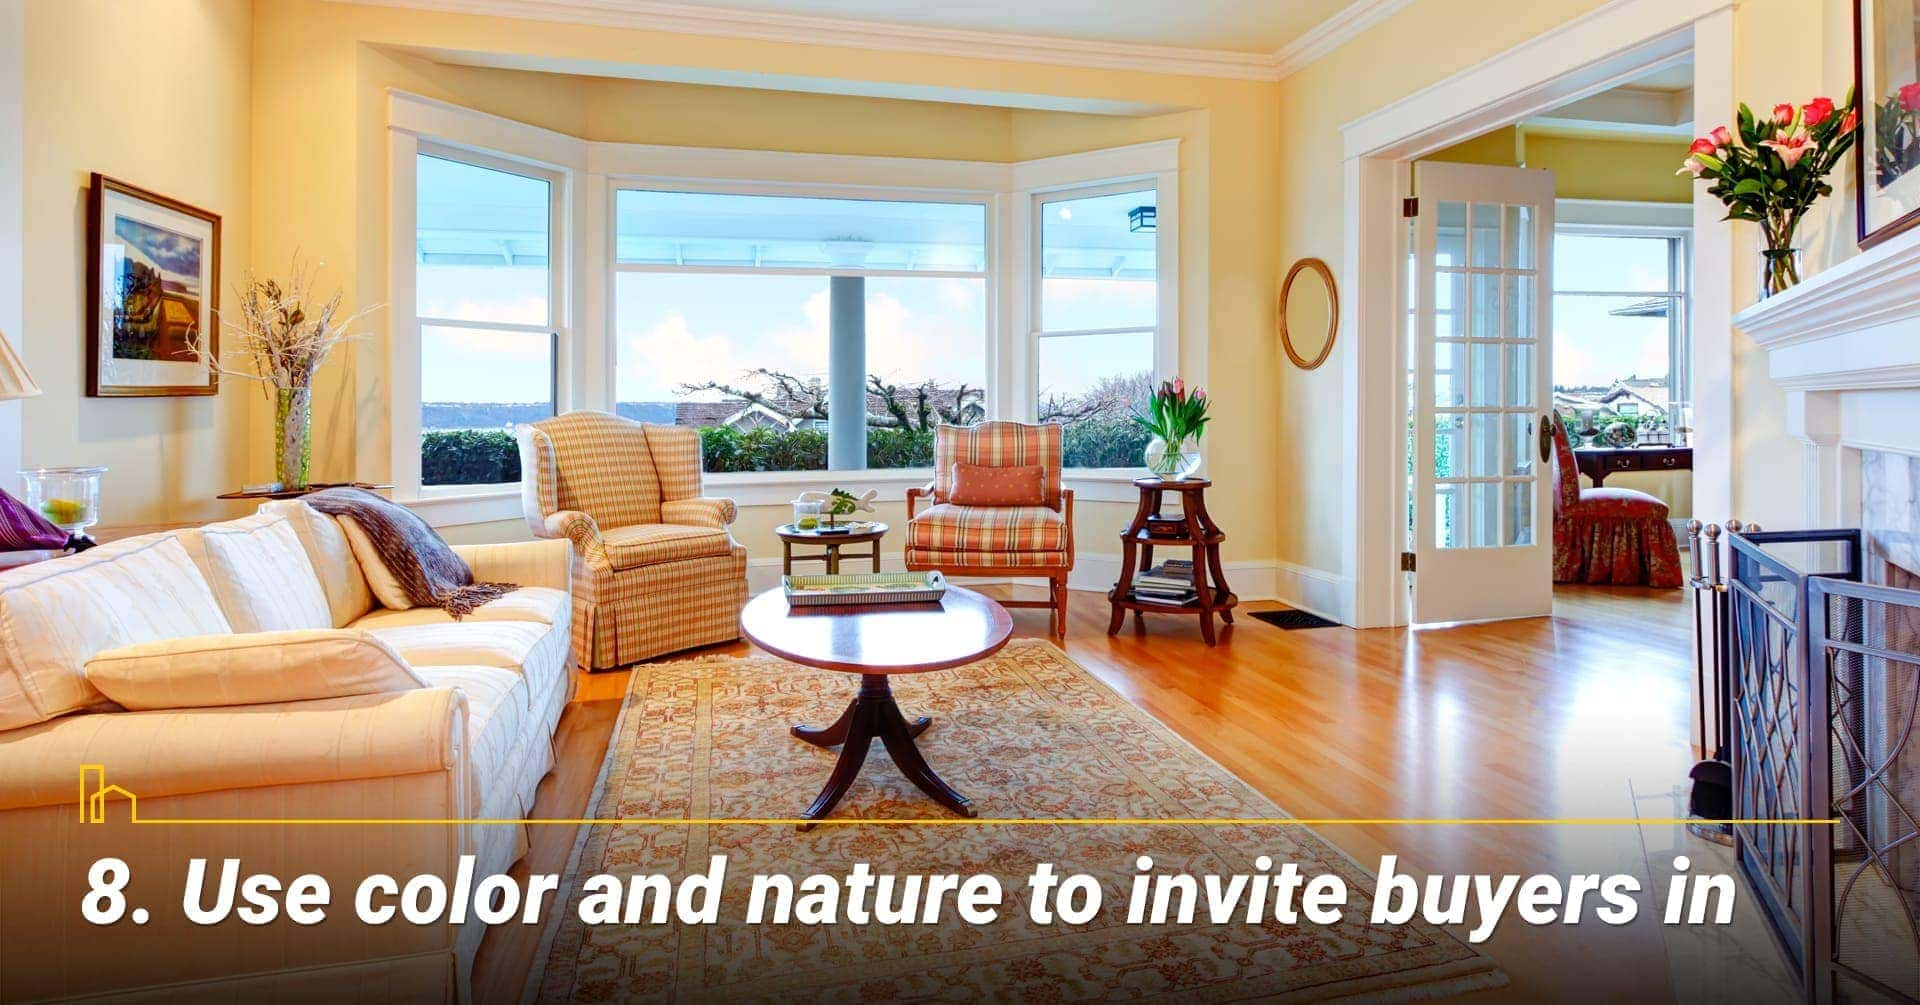 Use color and nature to invite buyers in, make it inviting to potential buyers